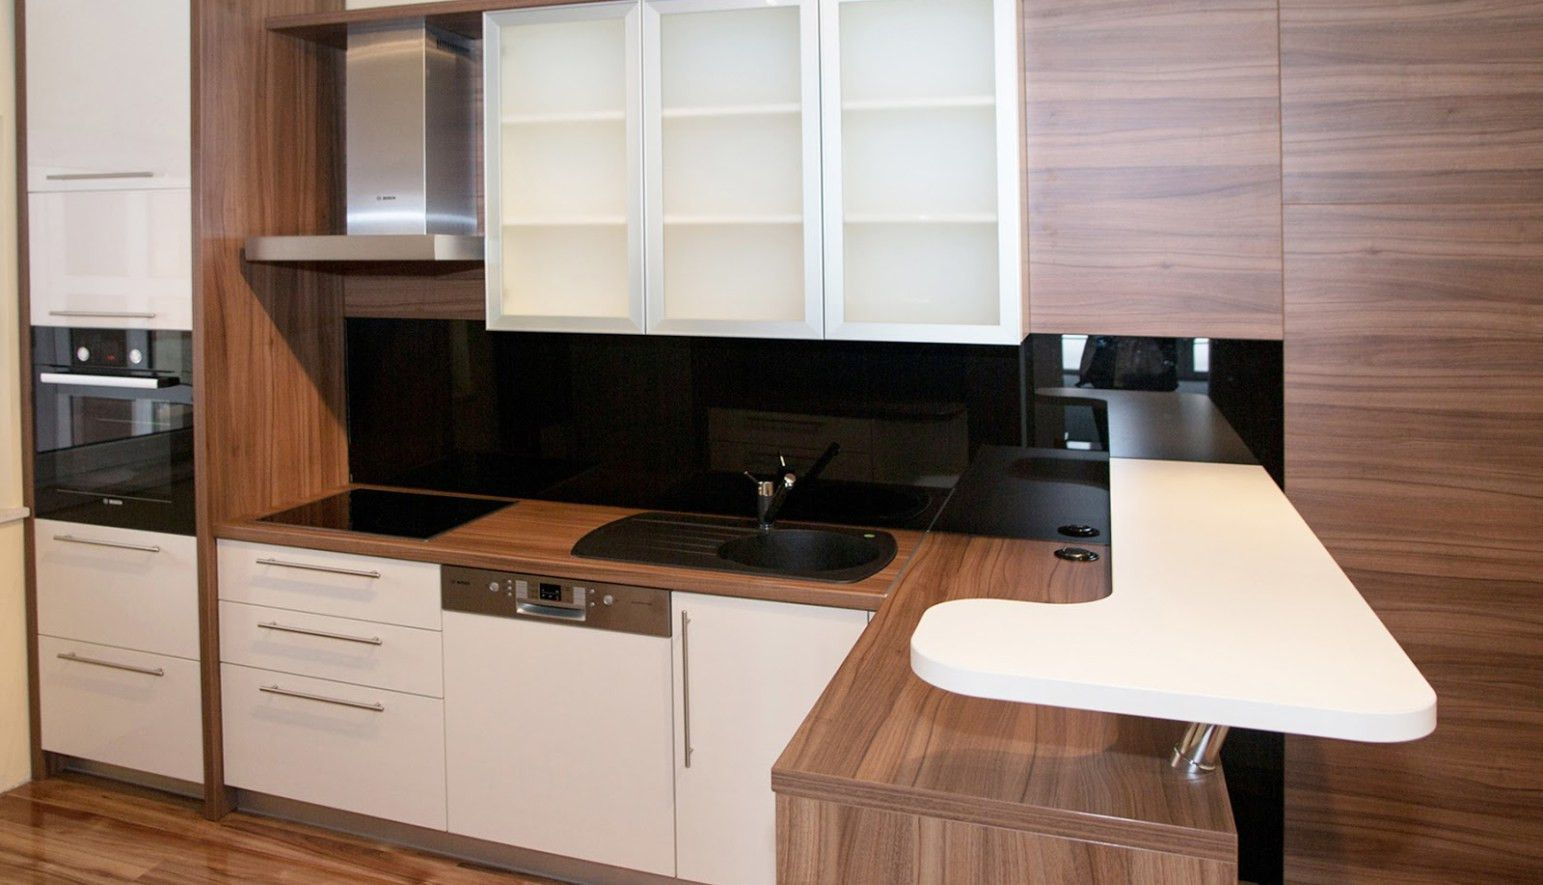 70 Portable Kitchen Cabinets For Small Apartments Best Cabinet Ideas Check More At